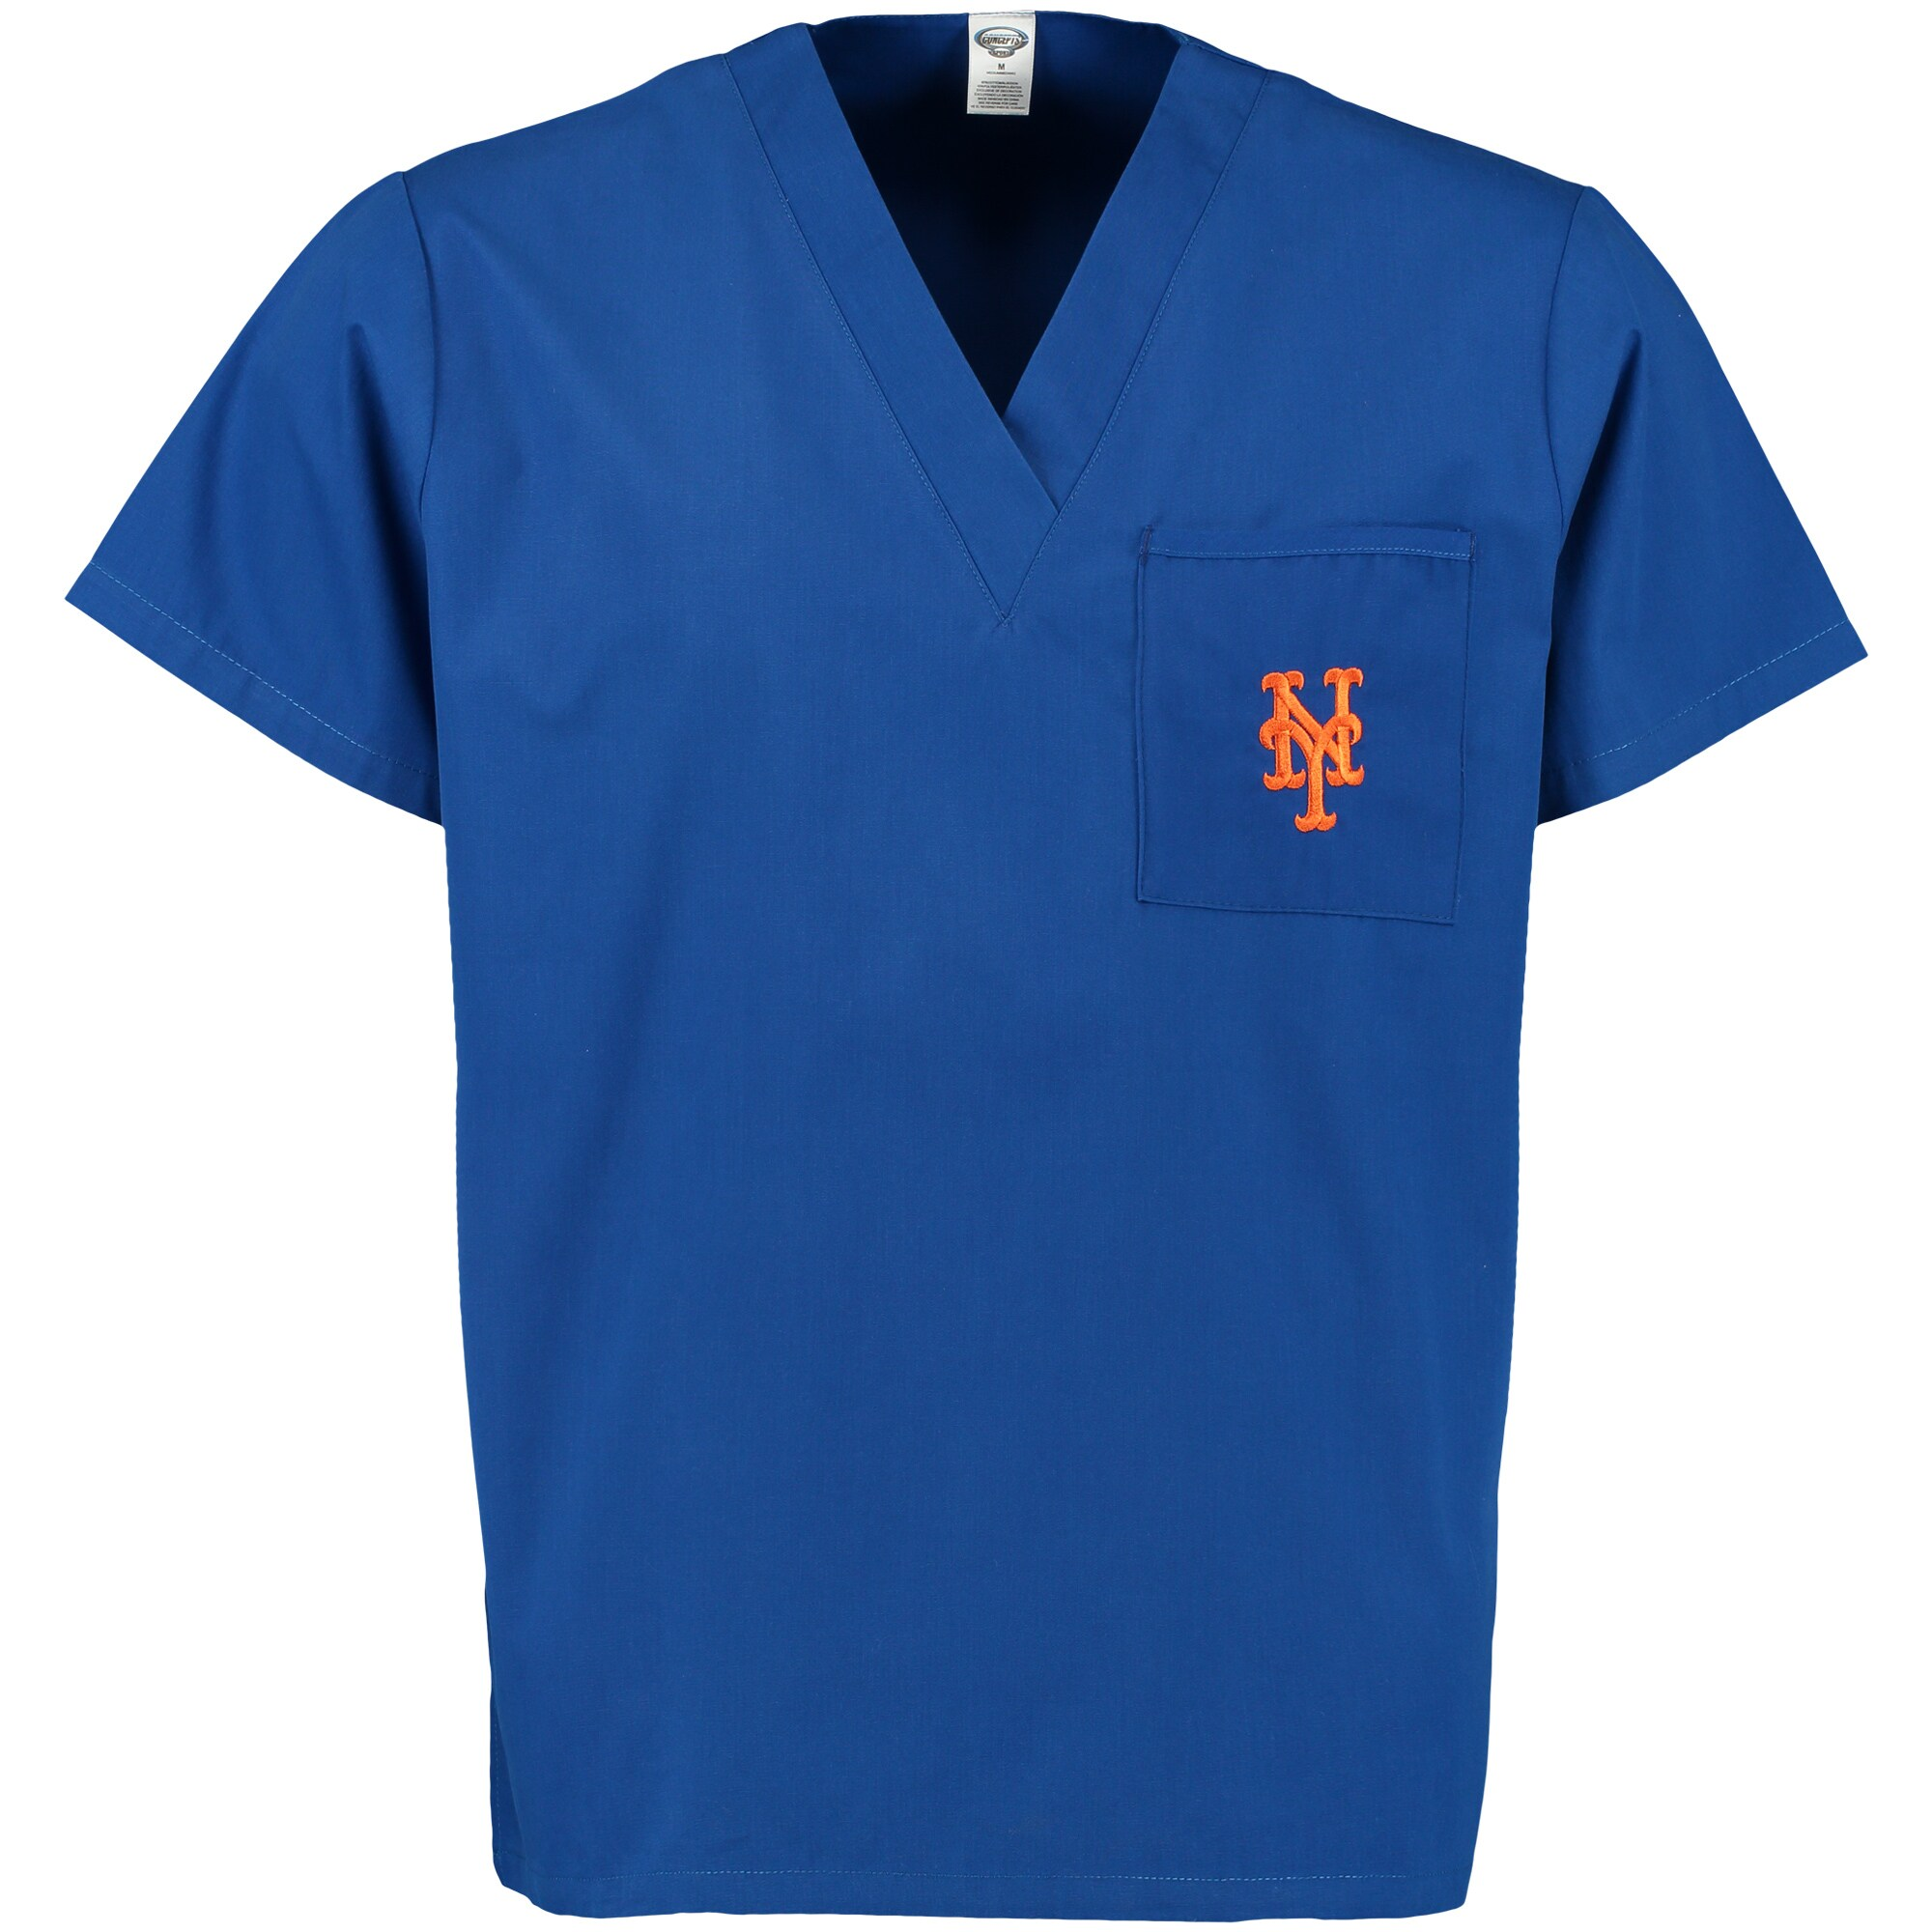 New York Mets Concepts Sport Scrub Top with Pocket - Royal